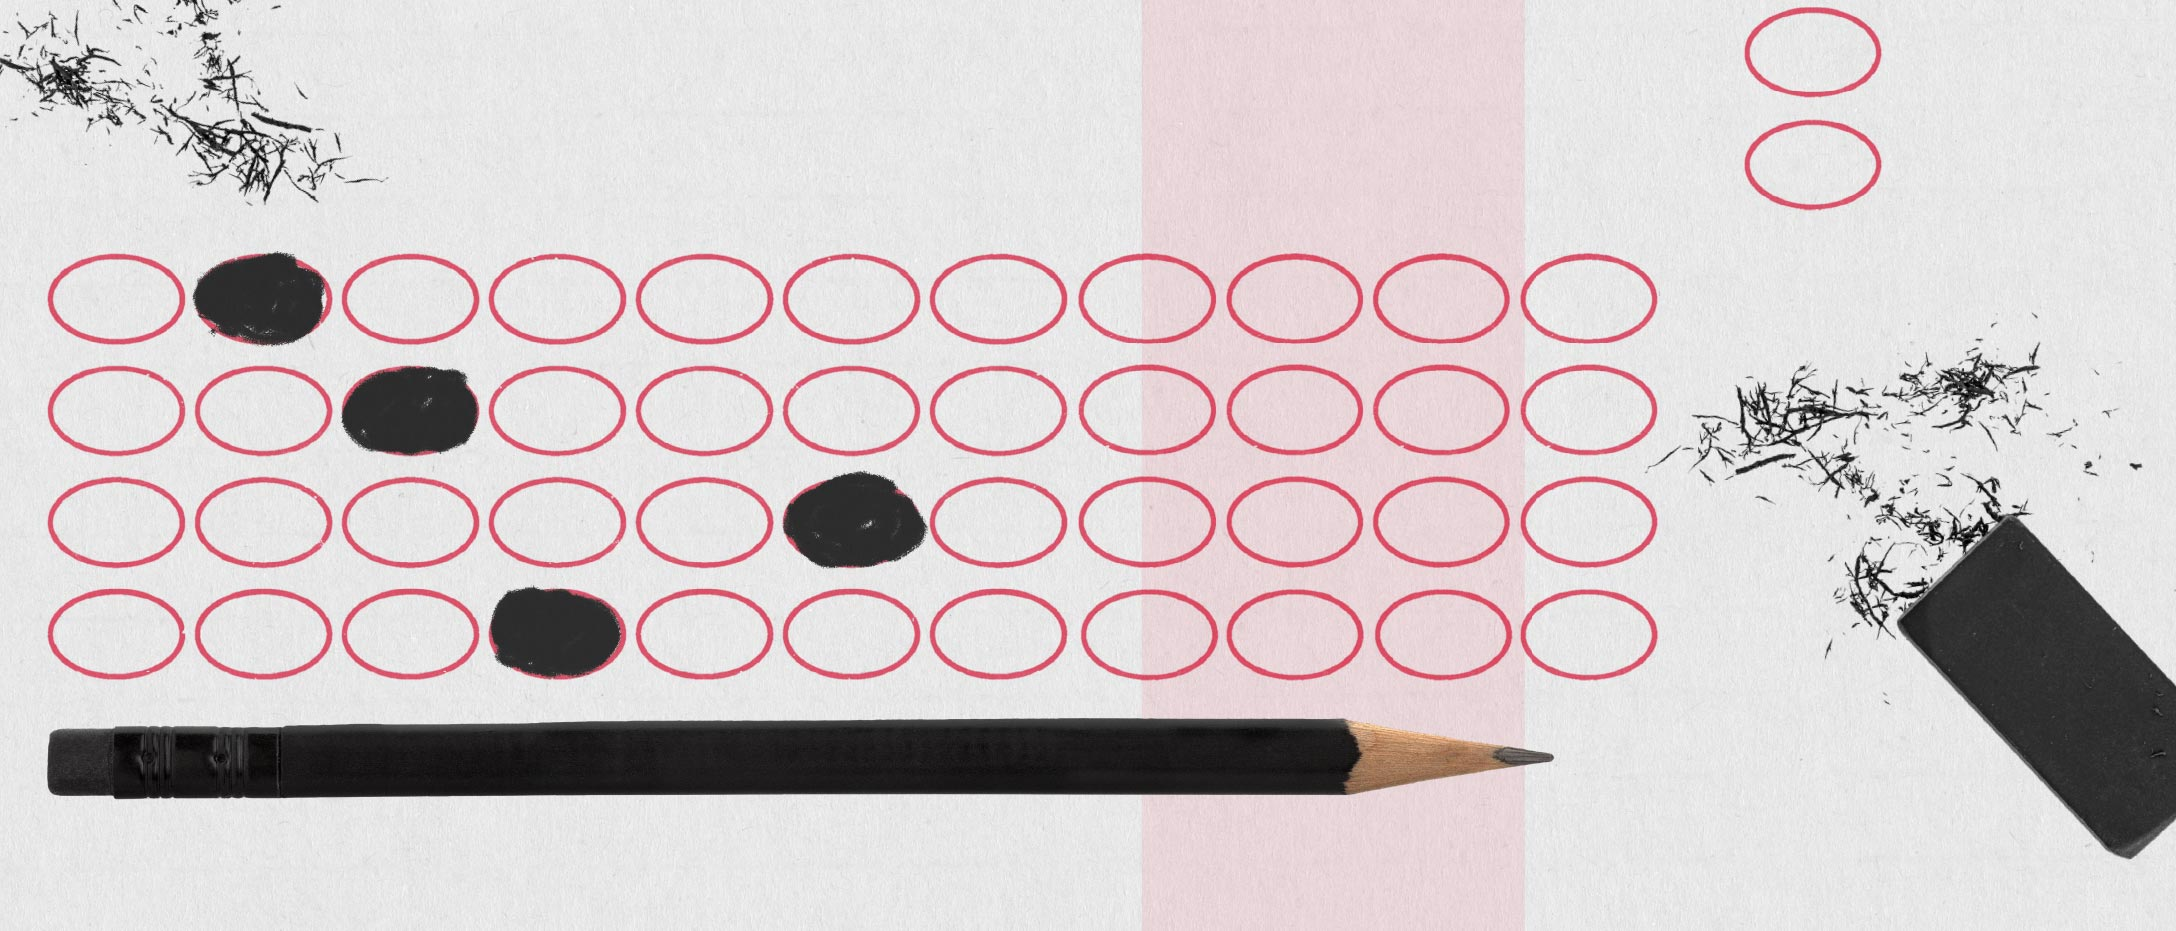 Scantron bubble test sheet with pencil and eraser shavings